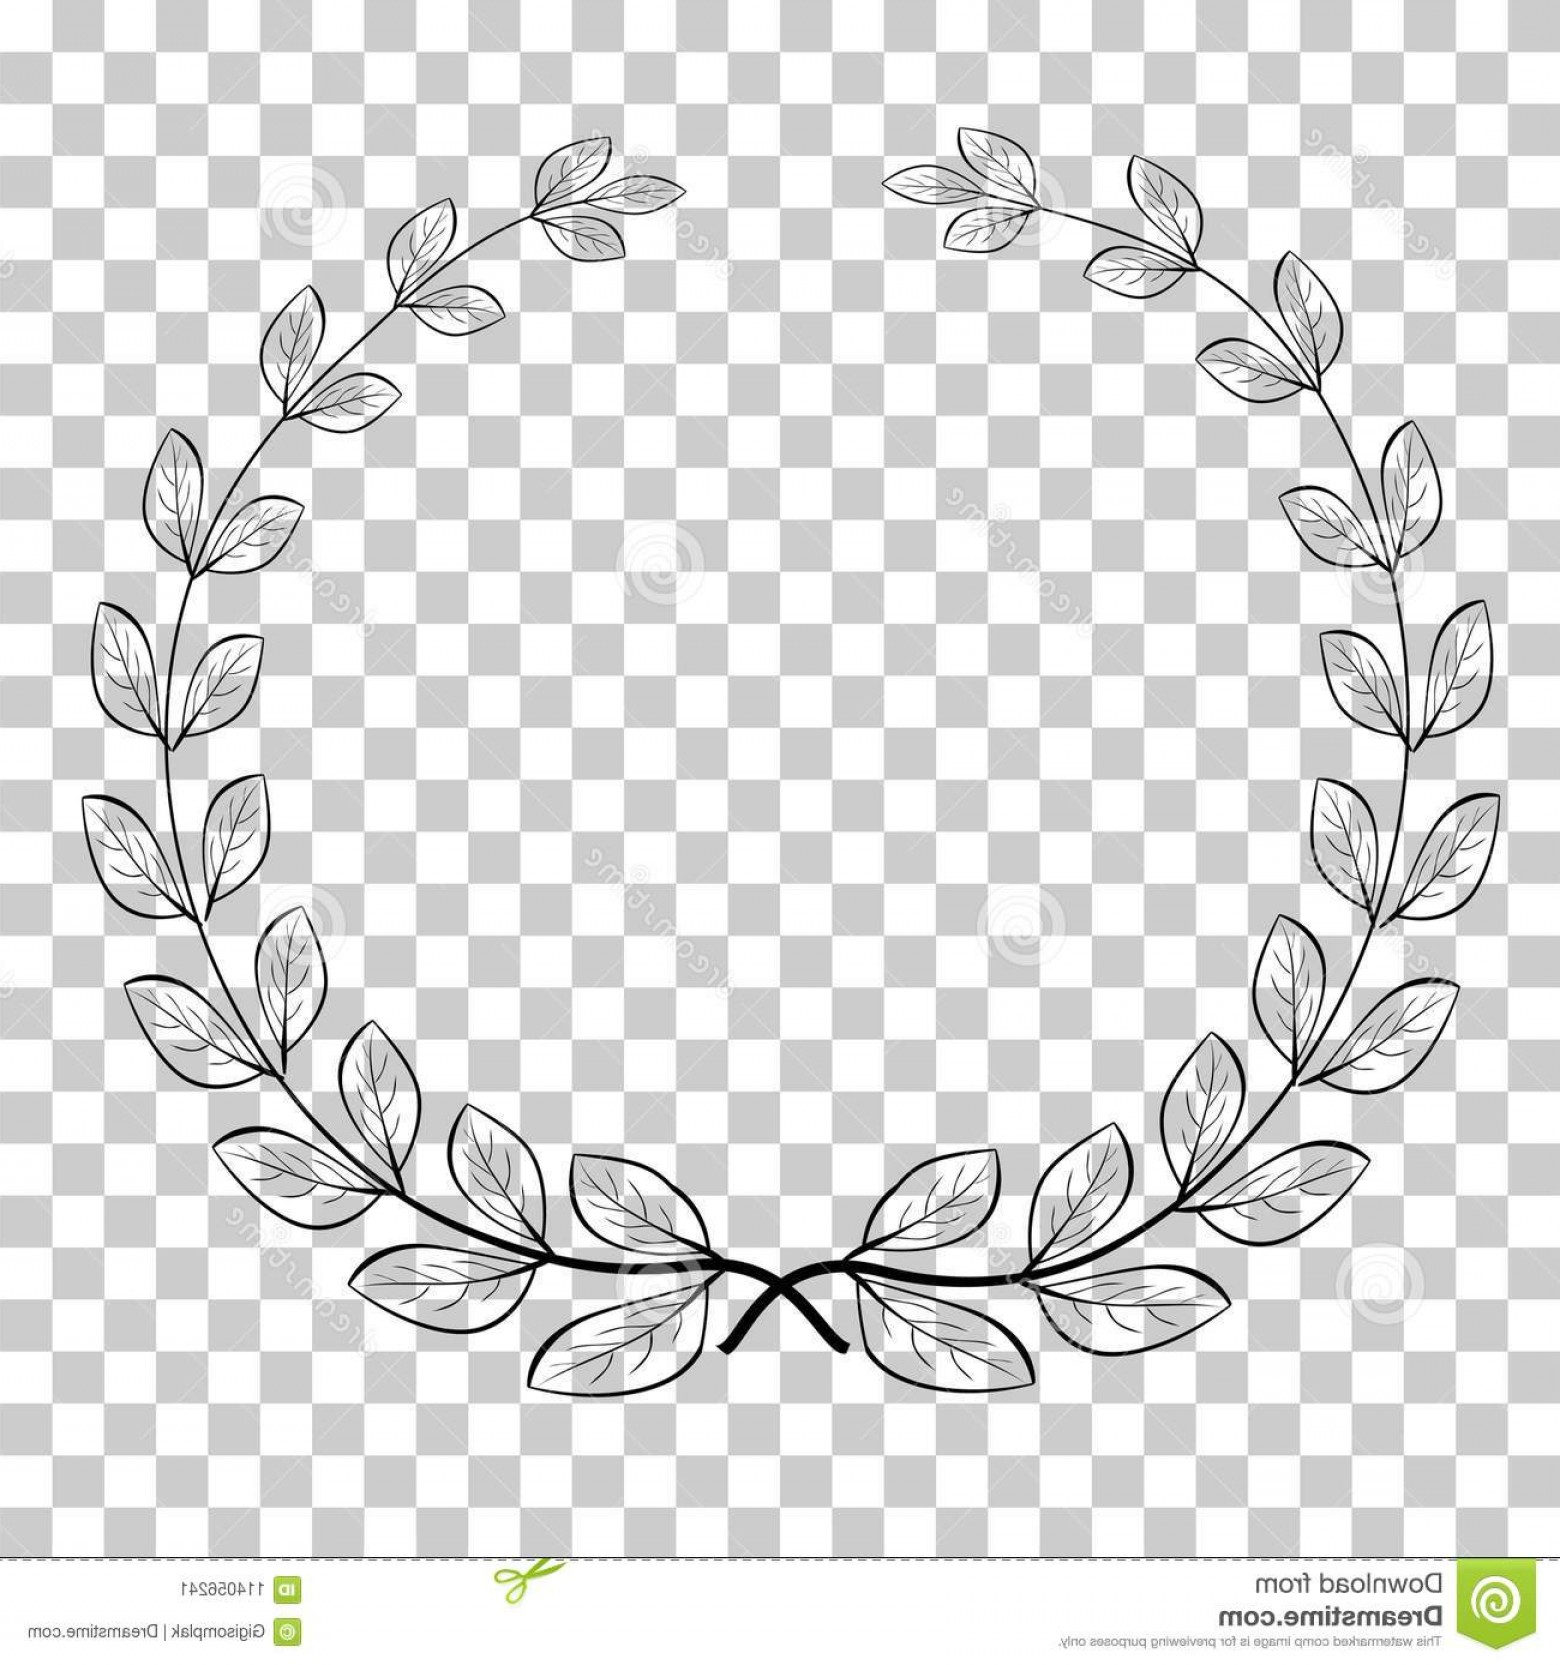 Floral Laurel Wreath Vector: Doodle Circle Laurel Wreath Vector Icon Your Title Border Transparent Effect Background Image